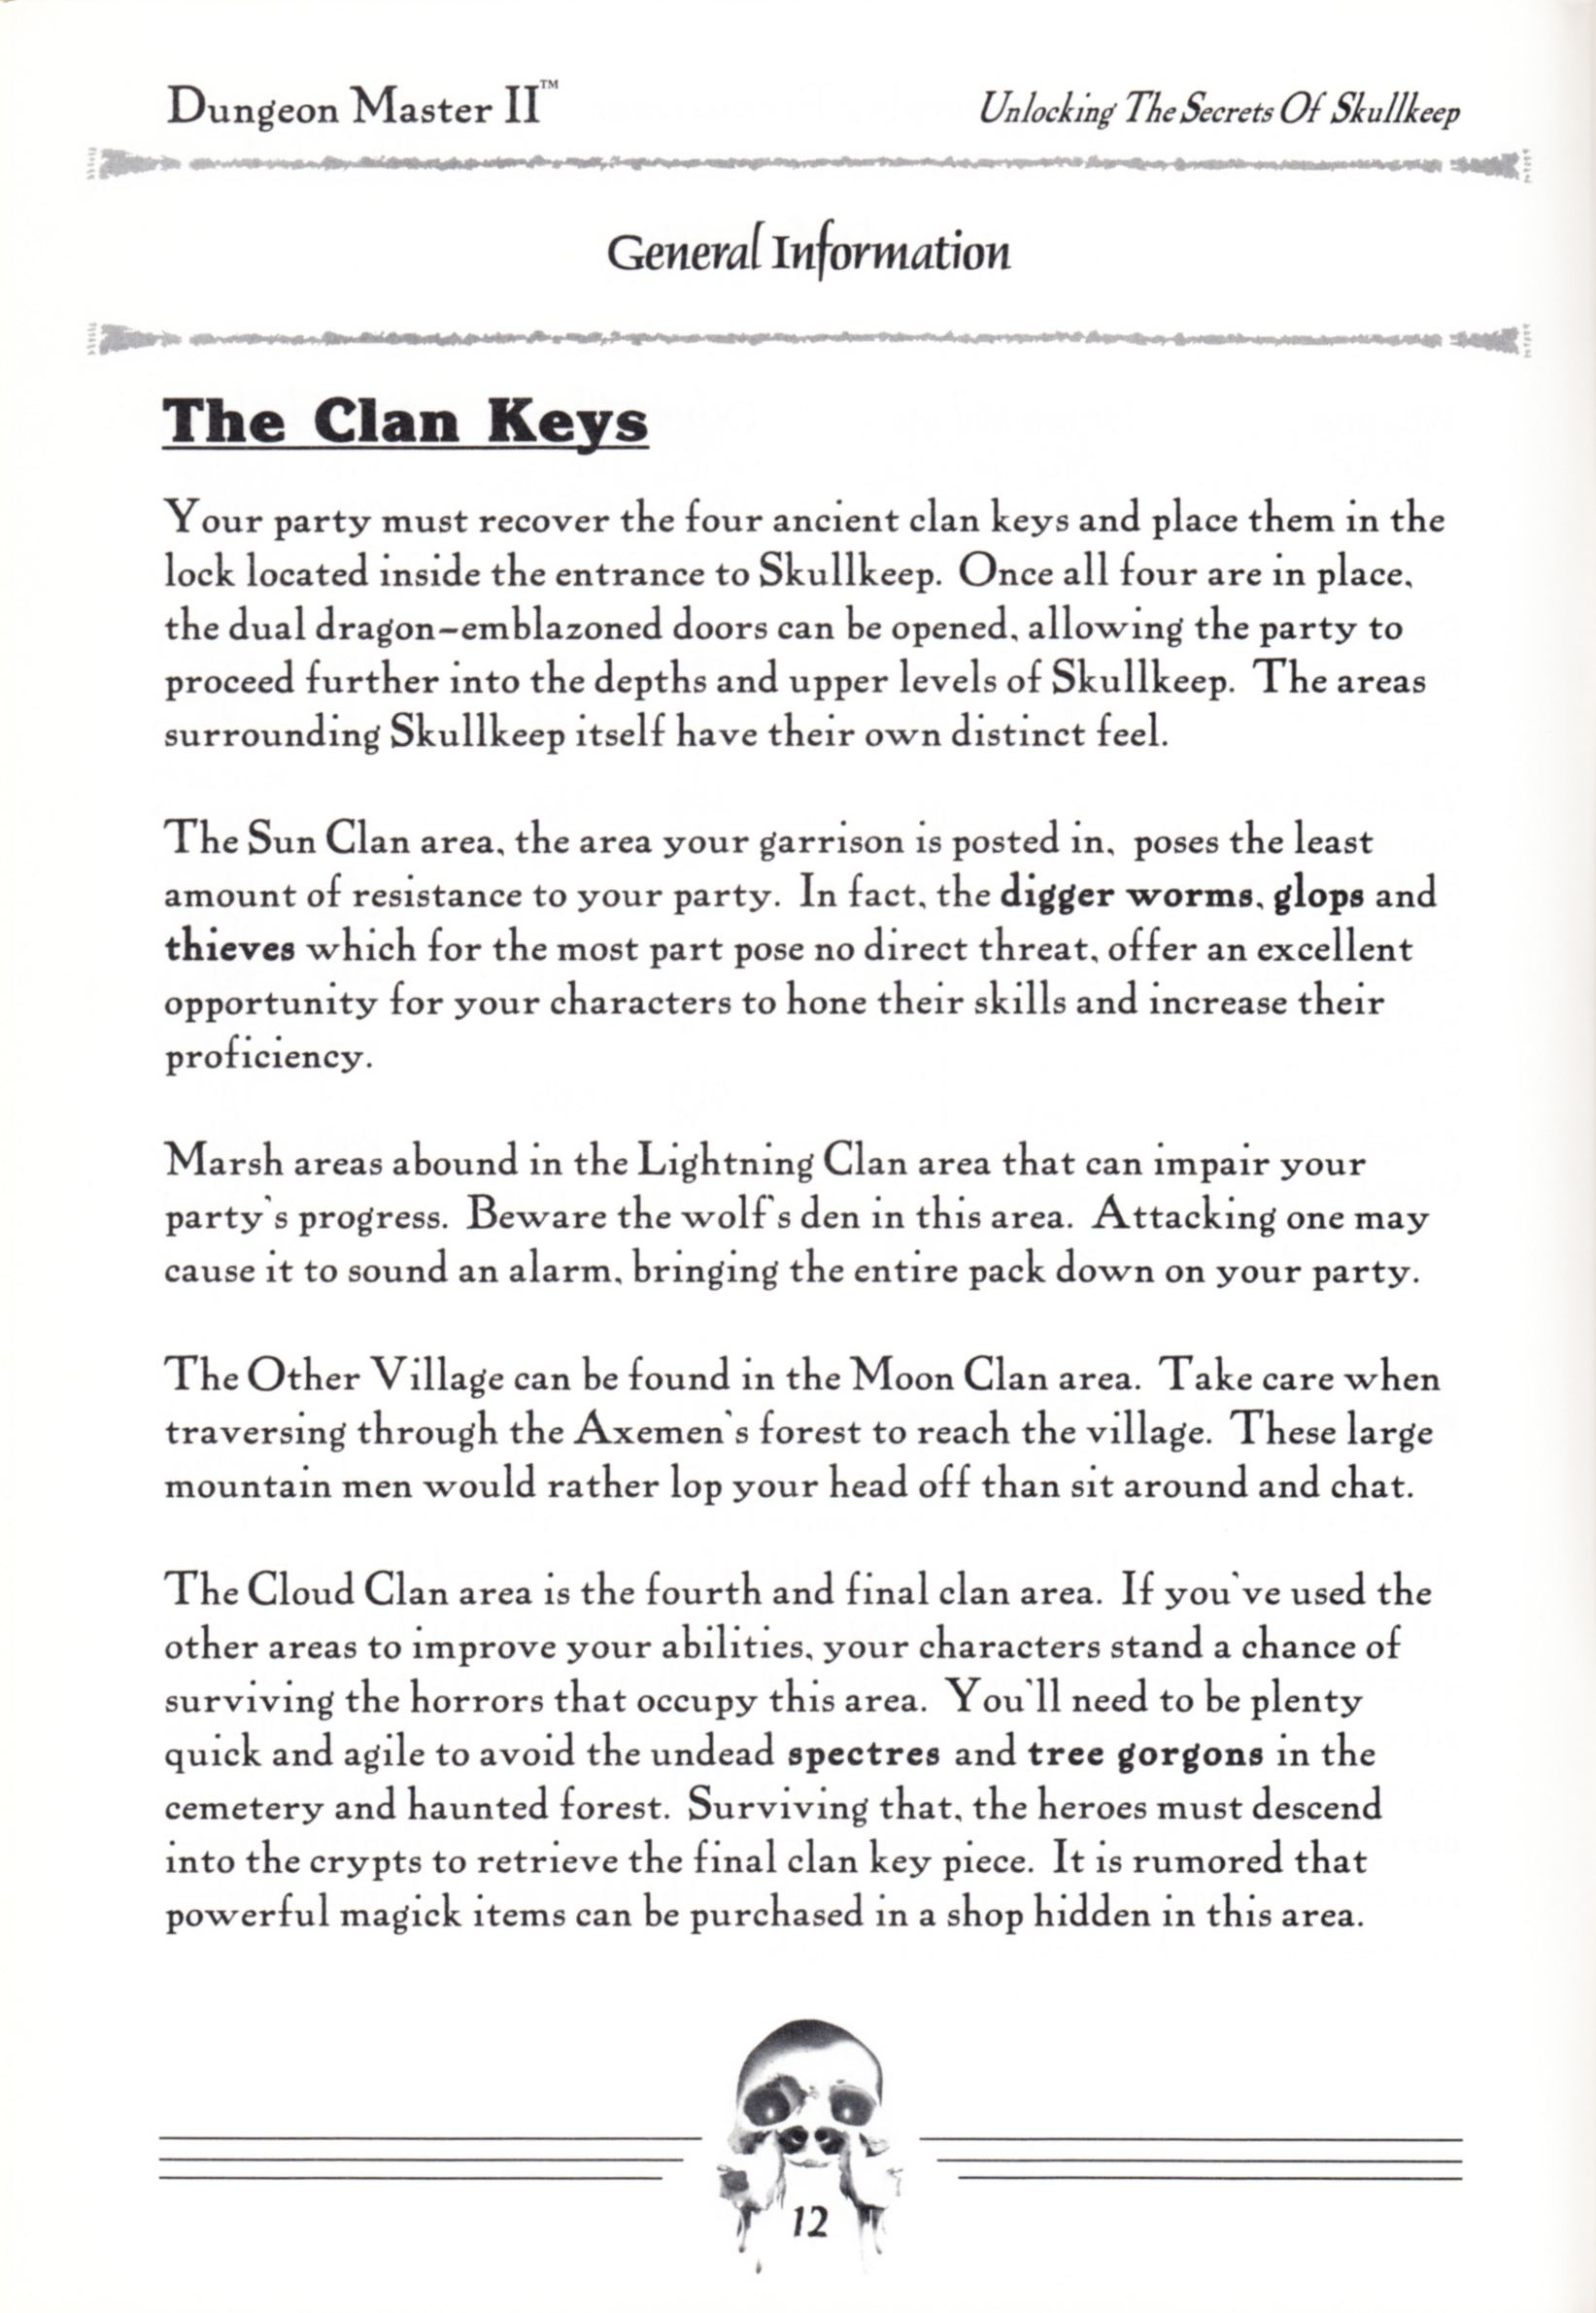 Hint Book - Dungeon Master II Clue Book - US - Page 014 - Scan